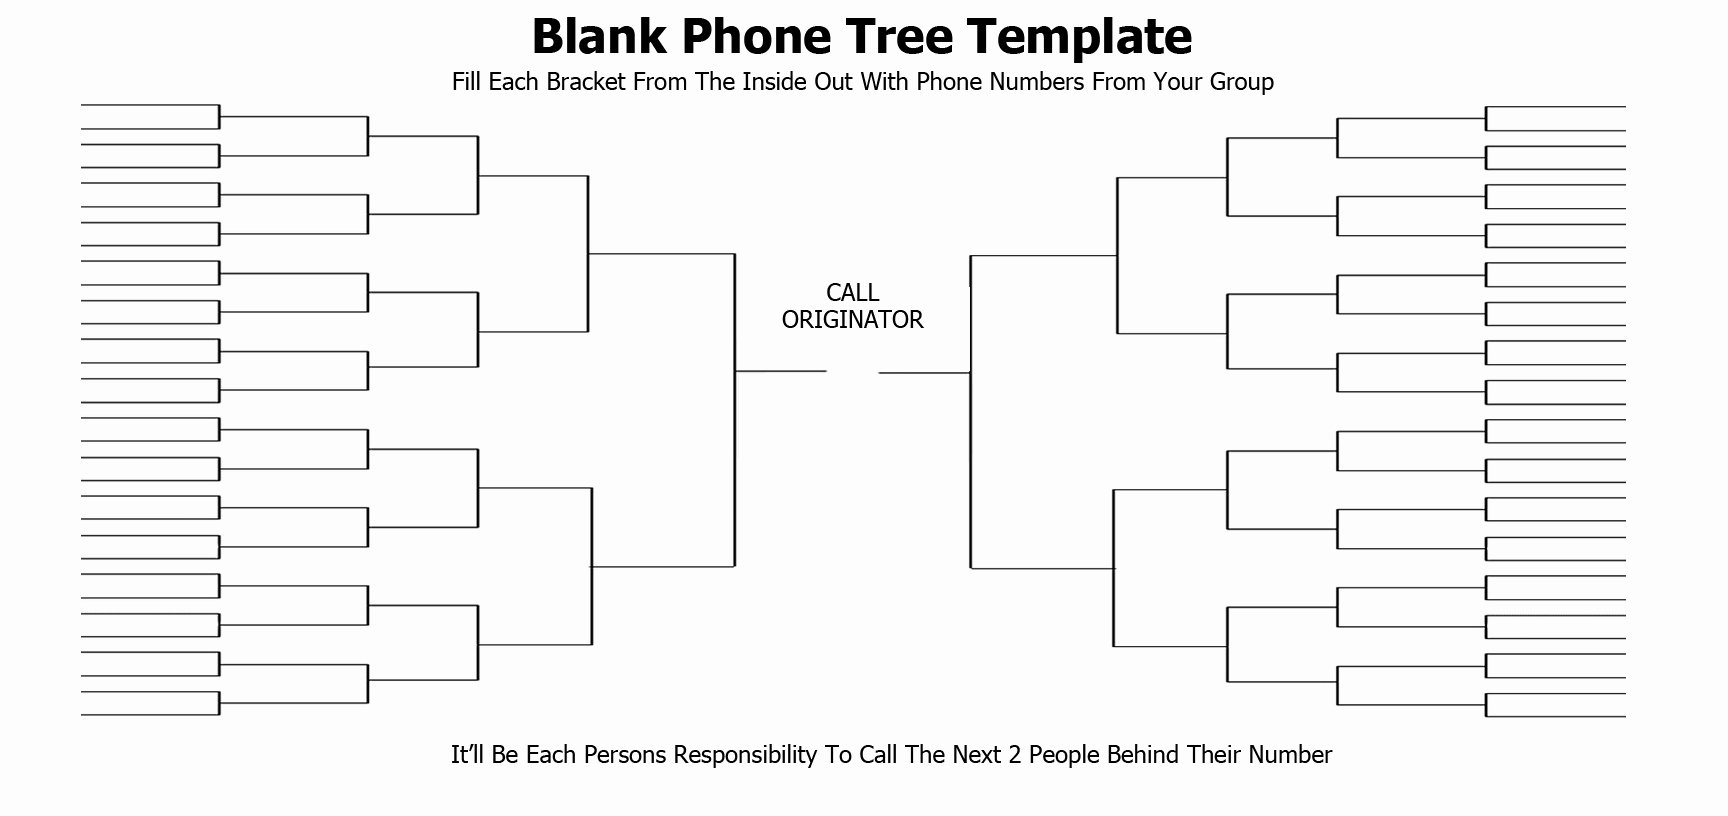 Emergency Call Tree Template Fresh 5 Free Phone Tree Templates Word Excel Pdf formats